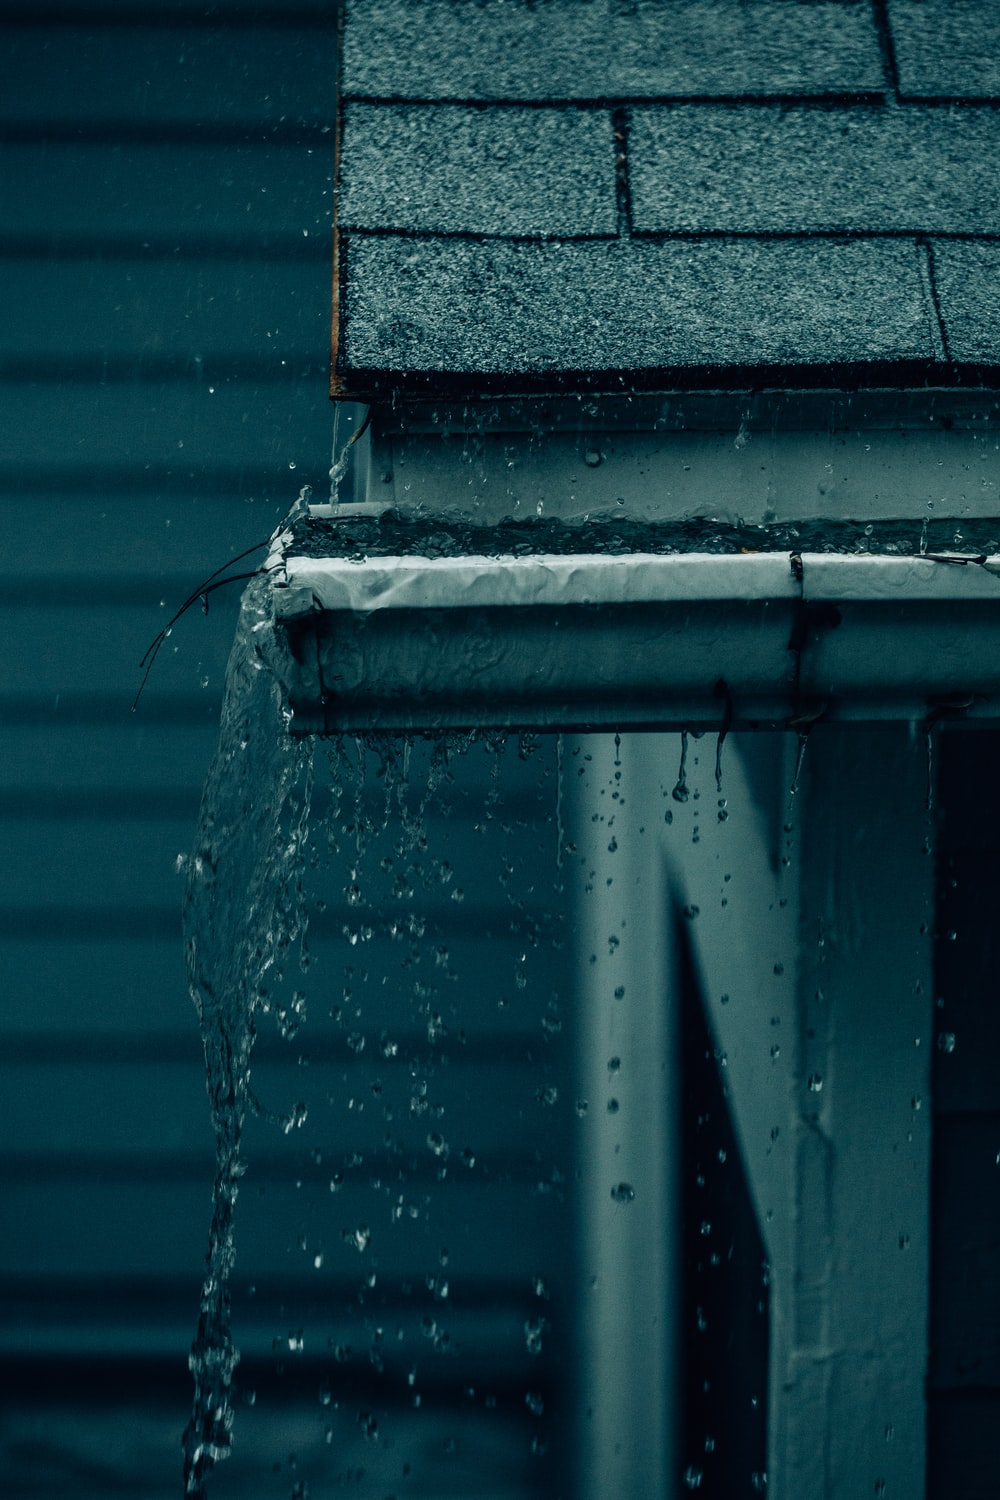 water falling from the roof